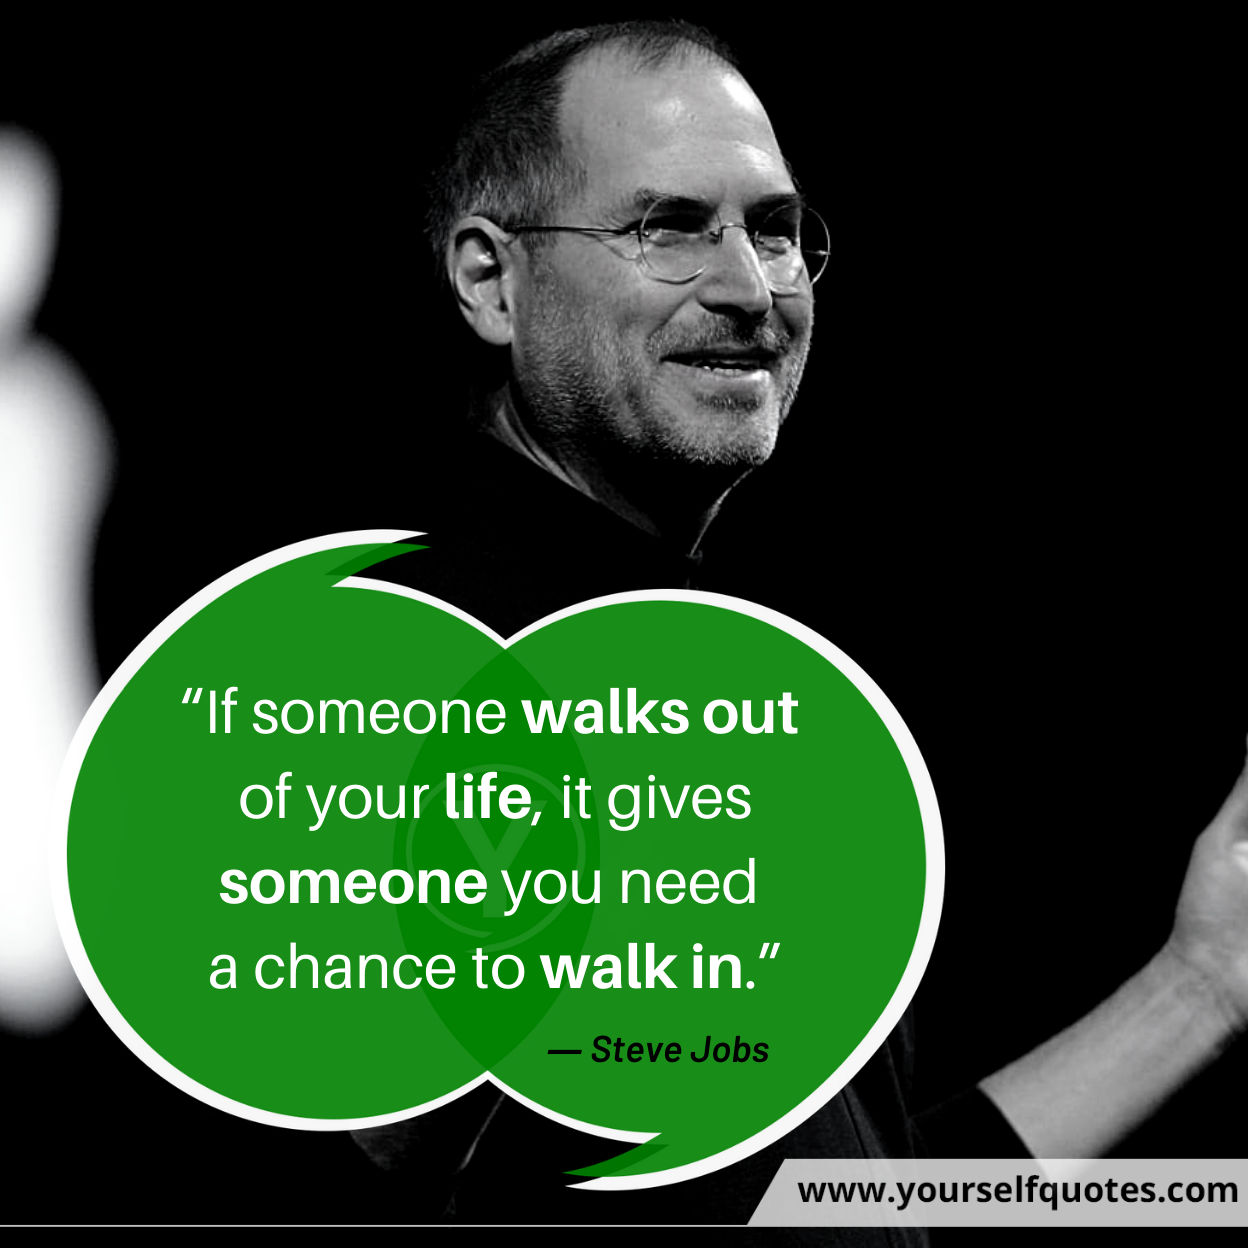 Quotes From Steve Jobs o